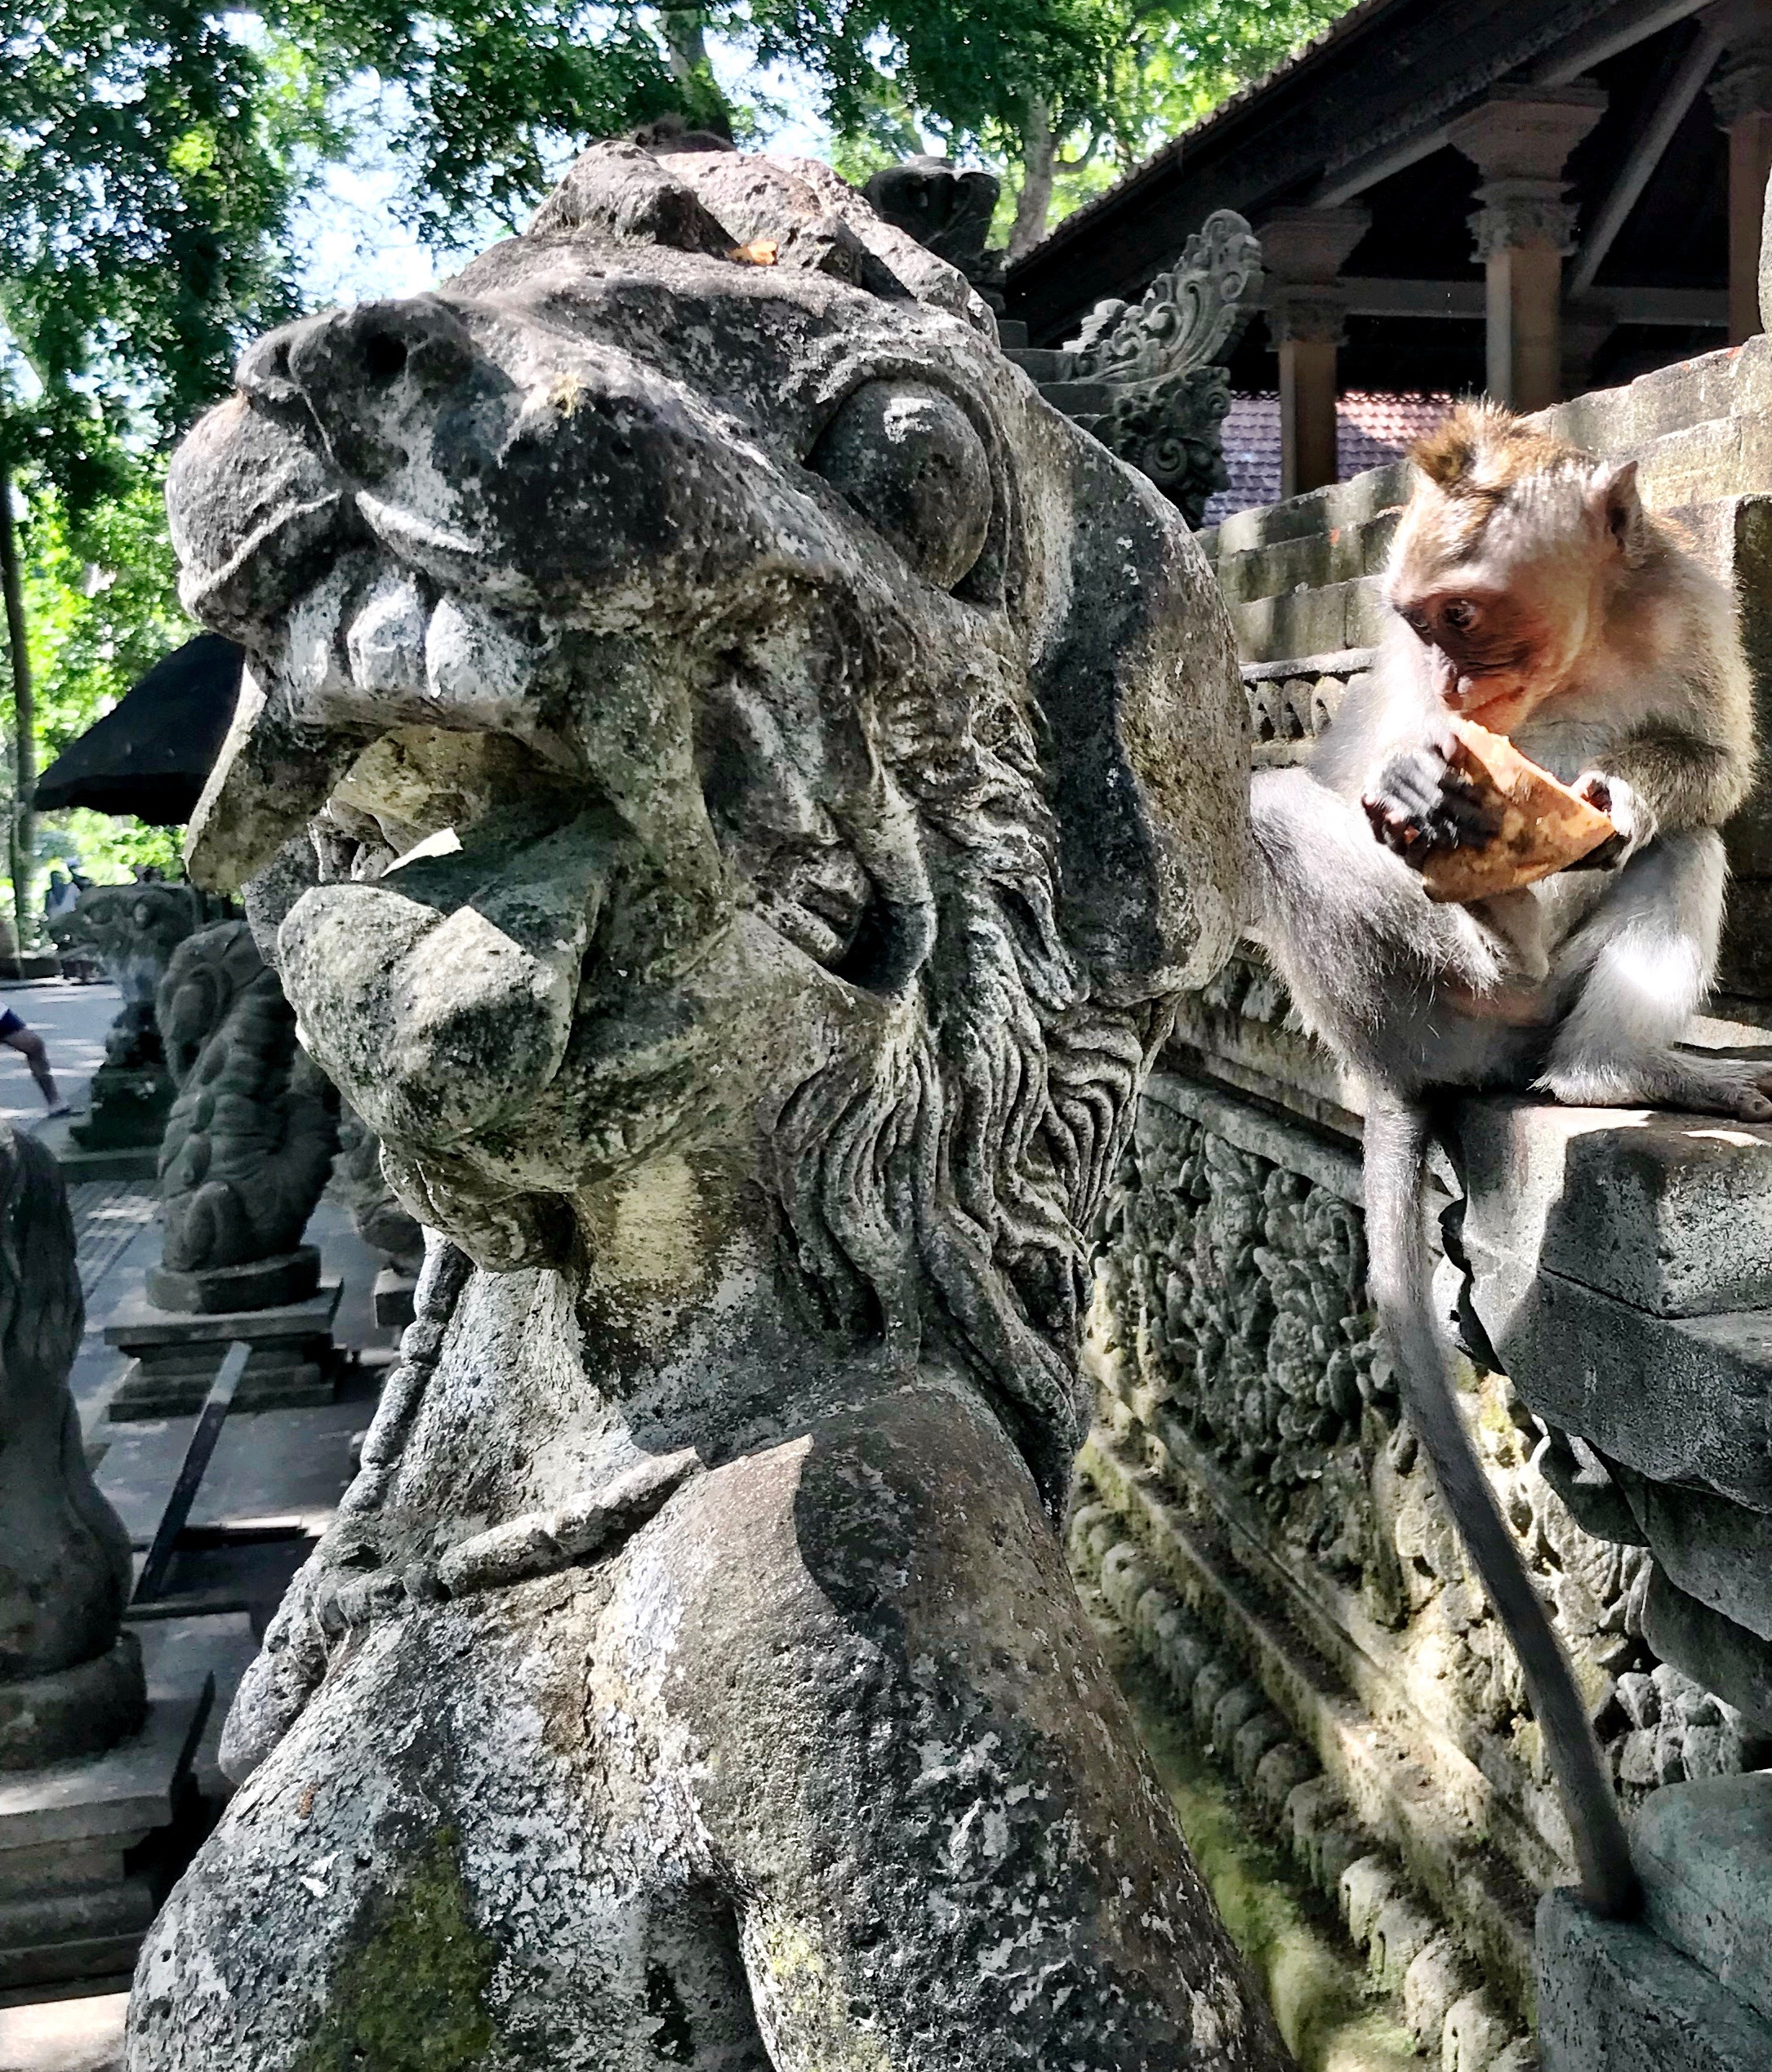 This little macaque was hanging out on the temple entrance